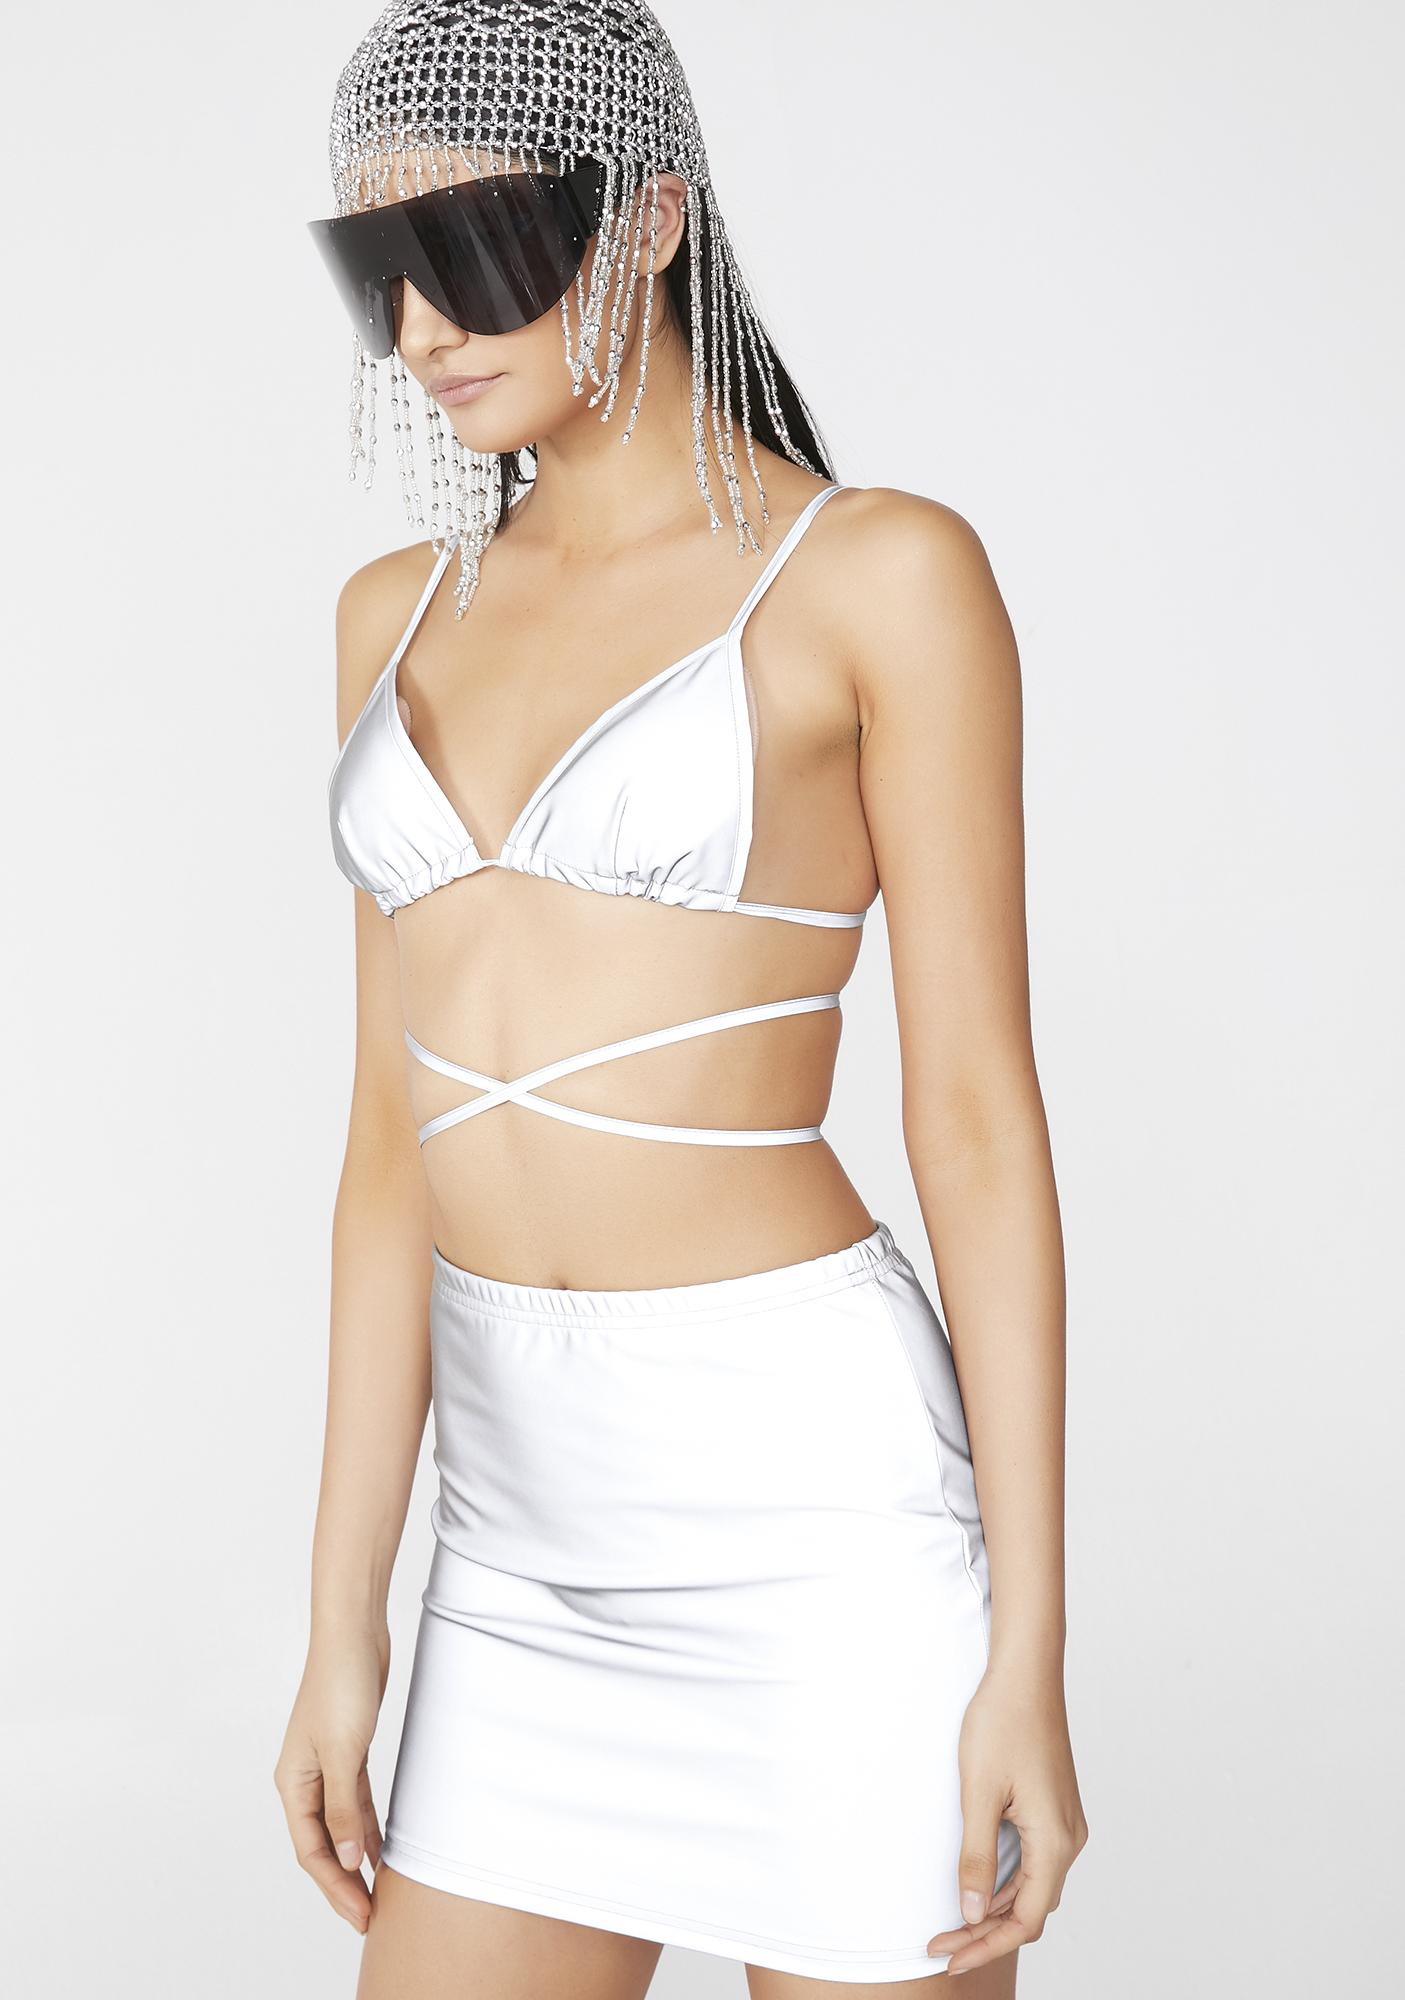 Club Exx Chrome Freak Of Nature Reflective Bra